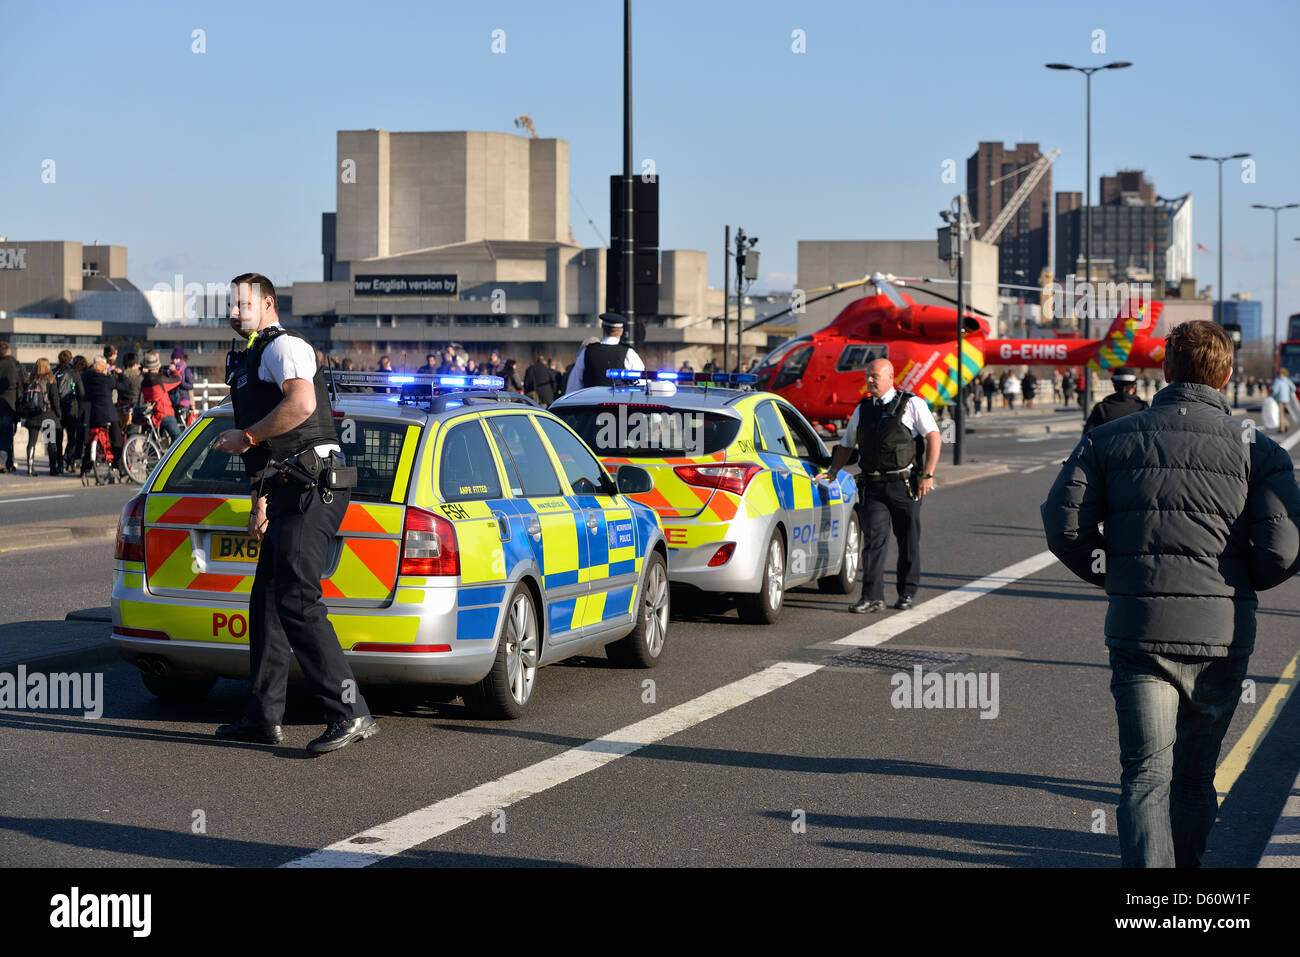 London, England - April 02, 2013: Police and London Air Ambulance at an emergency scene on Waterloo Bridge. - Stock Image